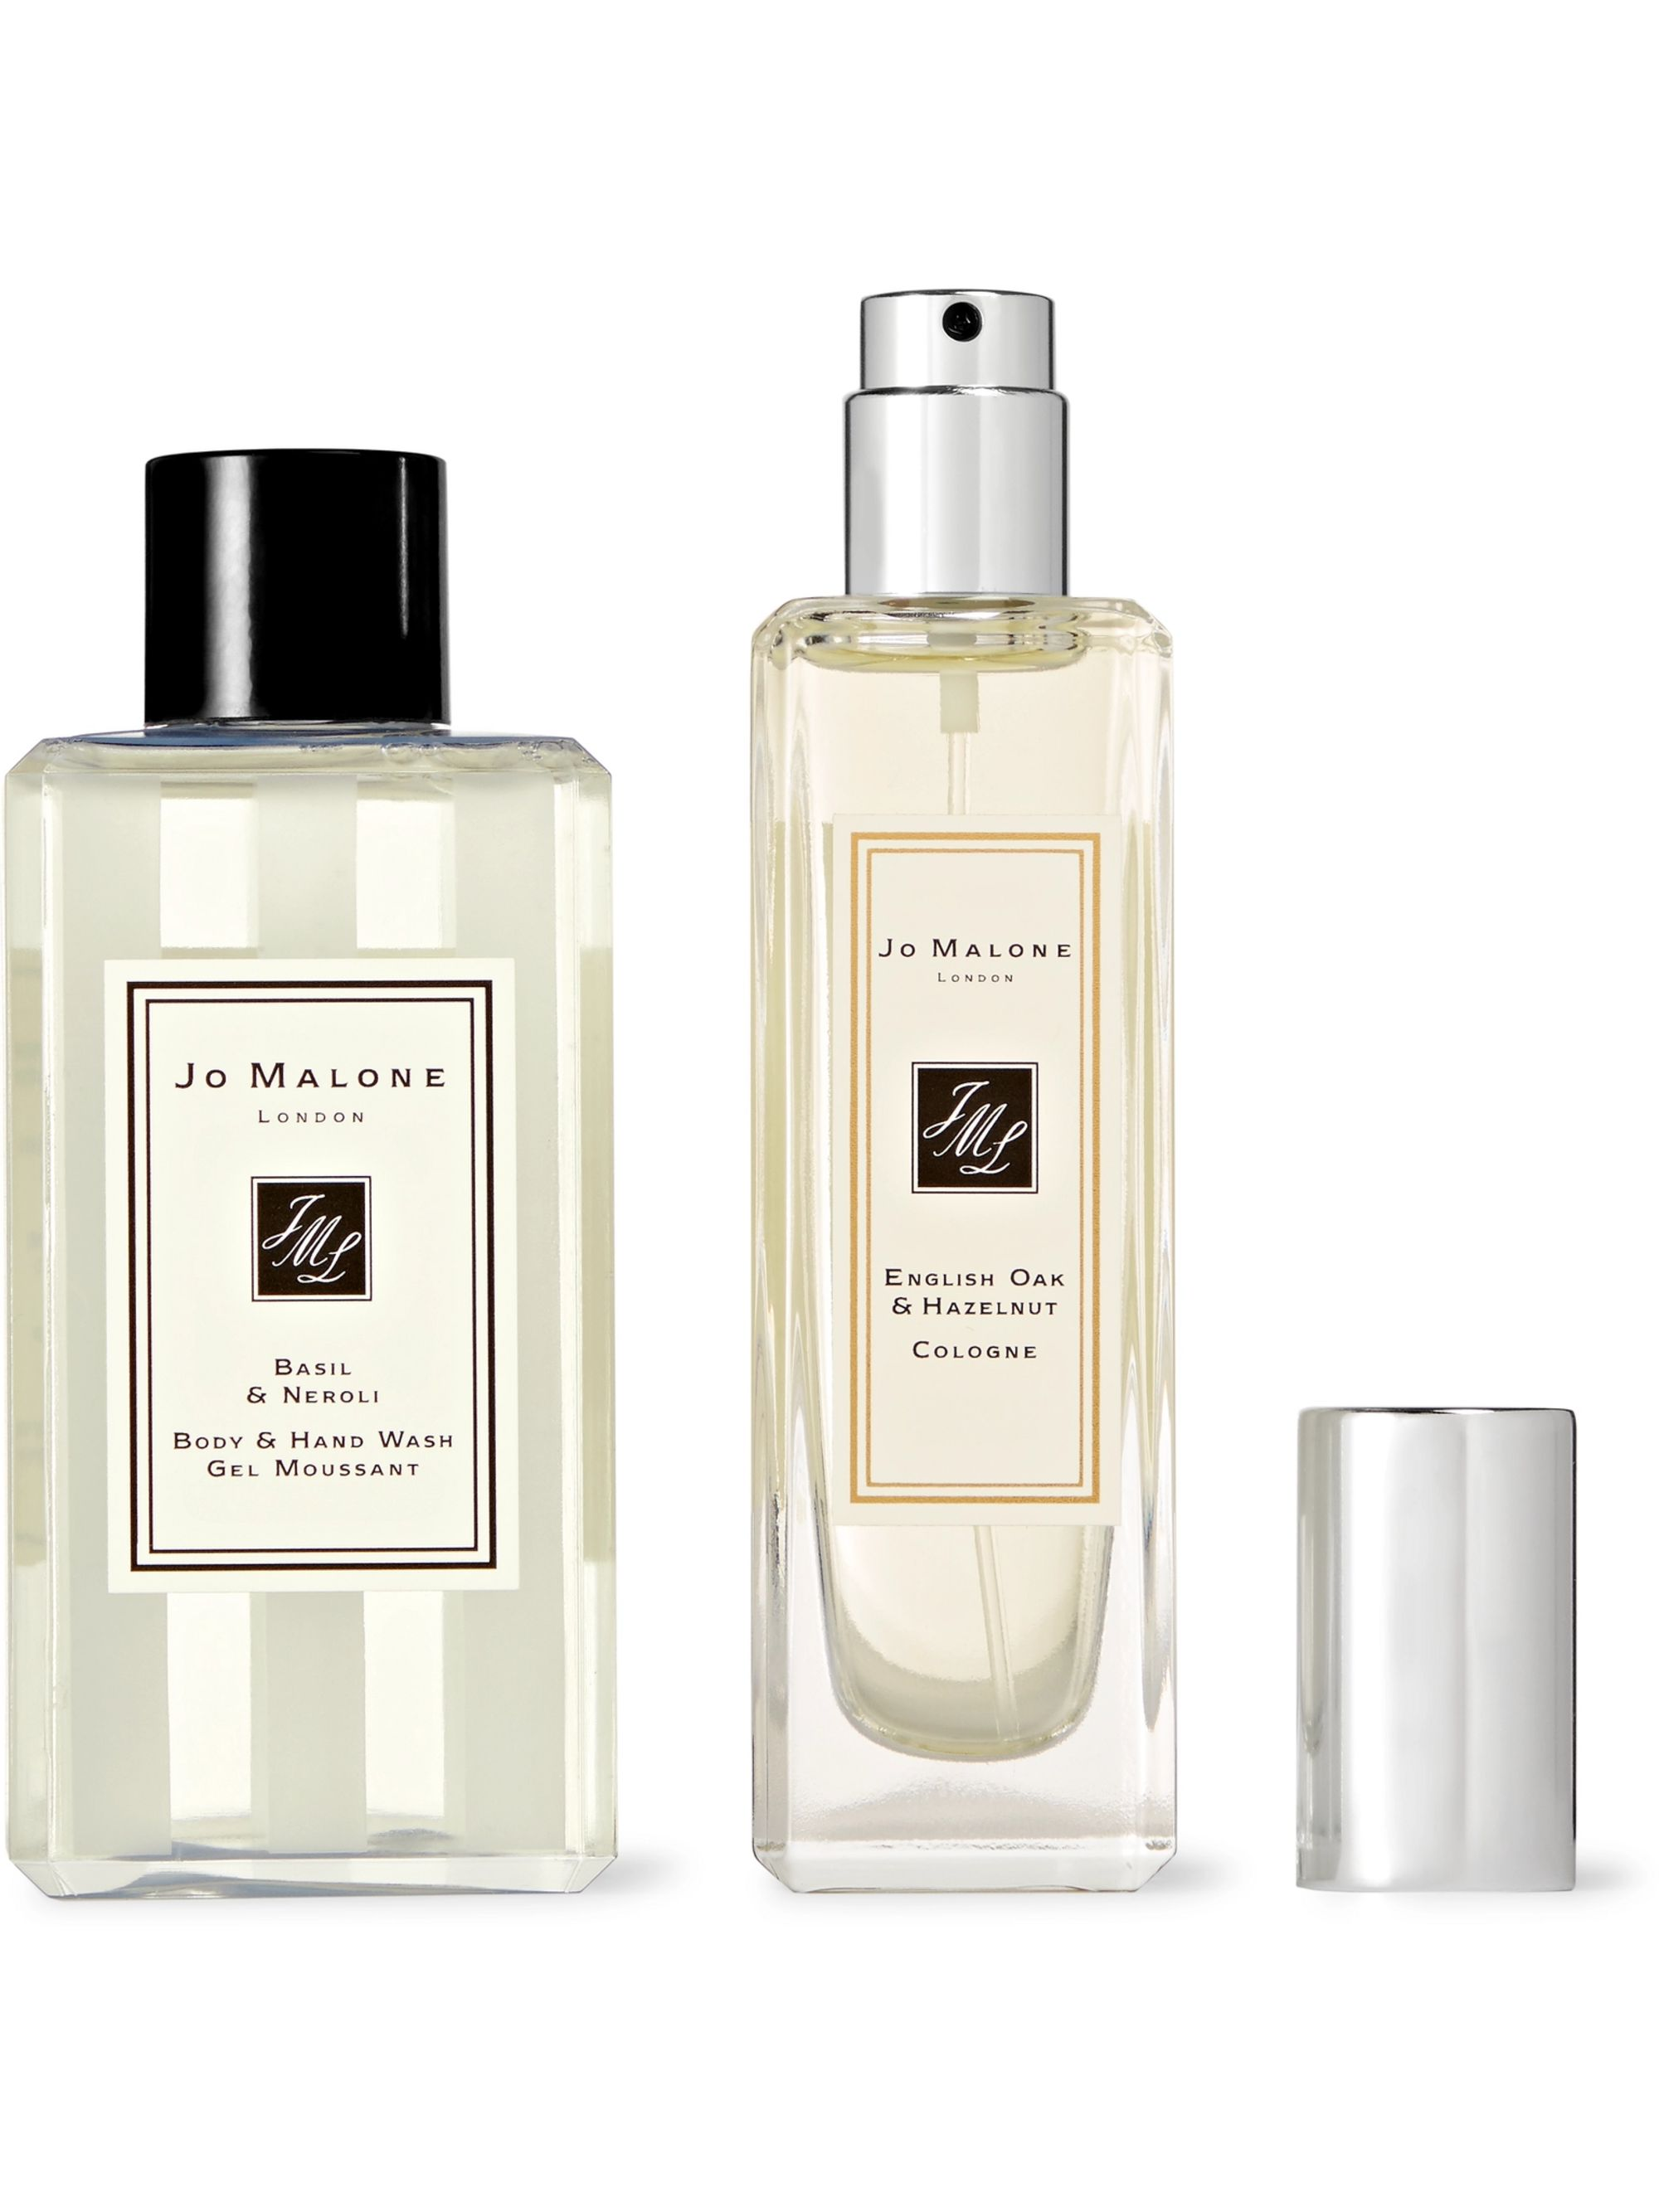 Jo Malone London English Oak & Hazelnut Cologne and Basil & Neroli Body Wash Set